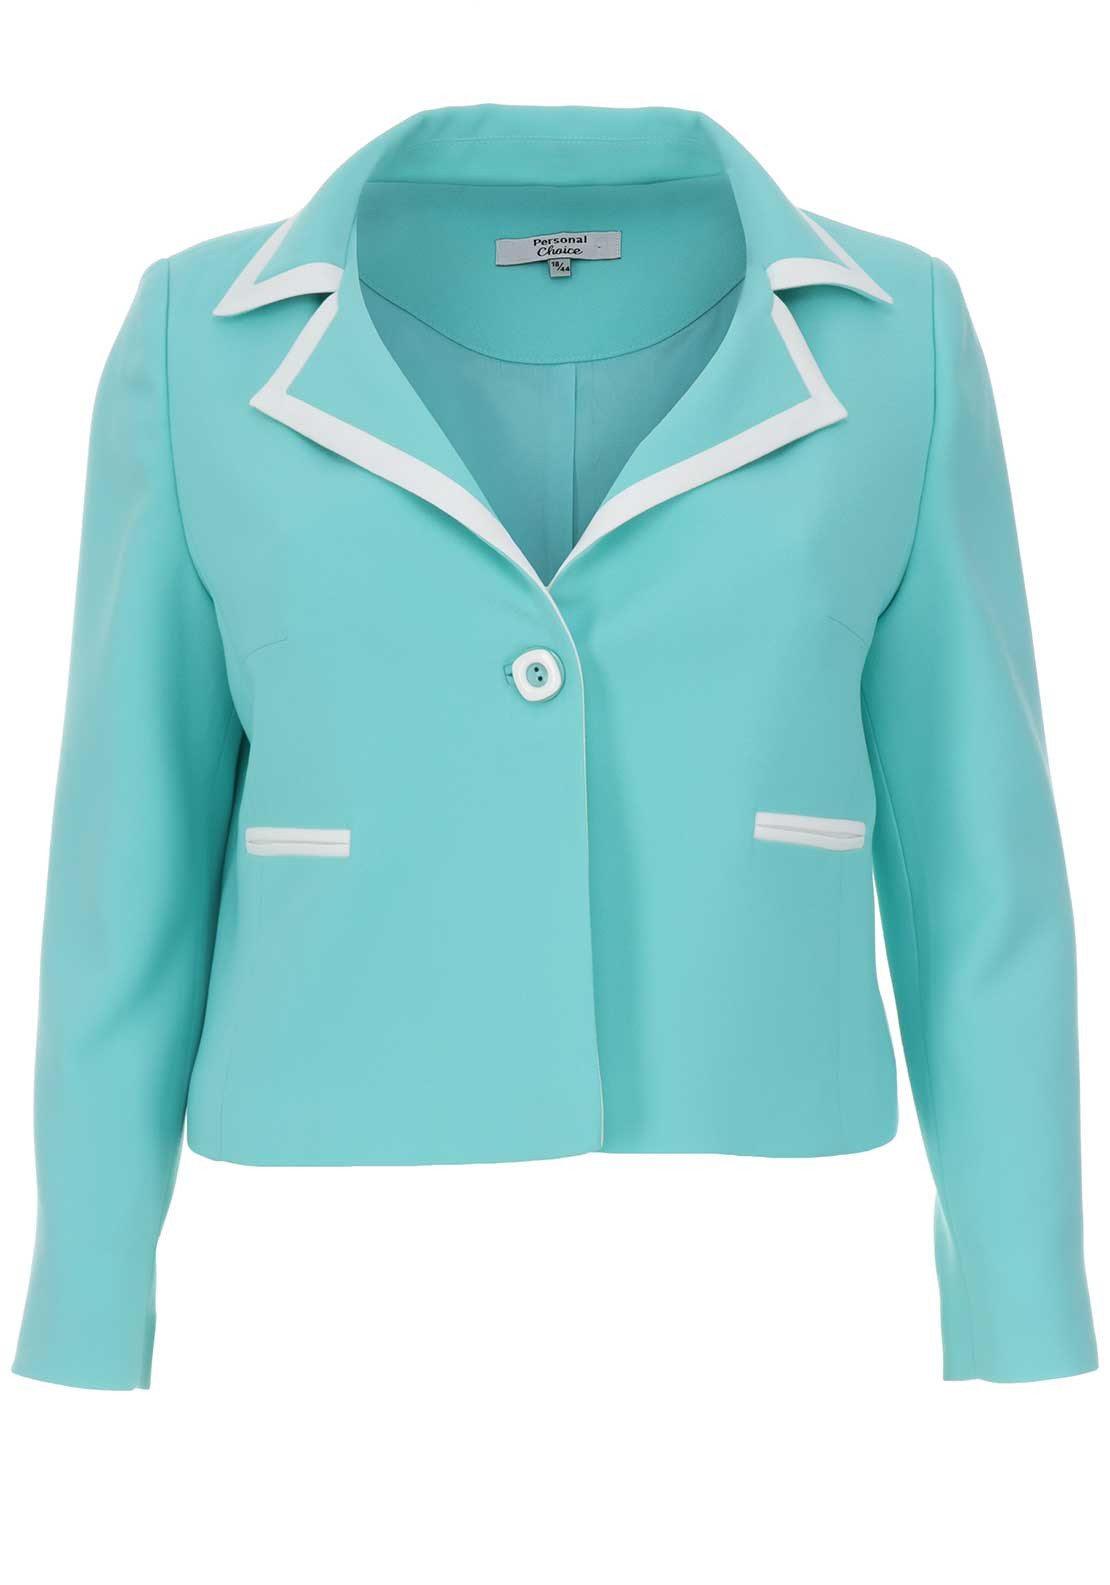 Personal Choice Crepe Blazer Jacket, Aqua Green